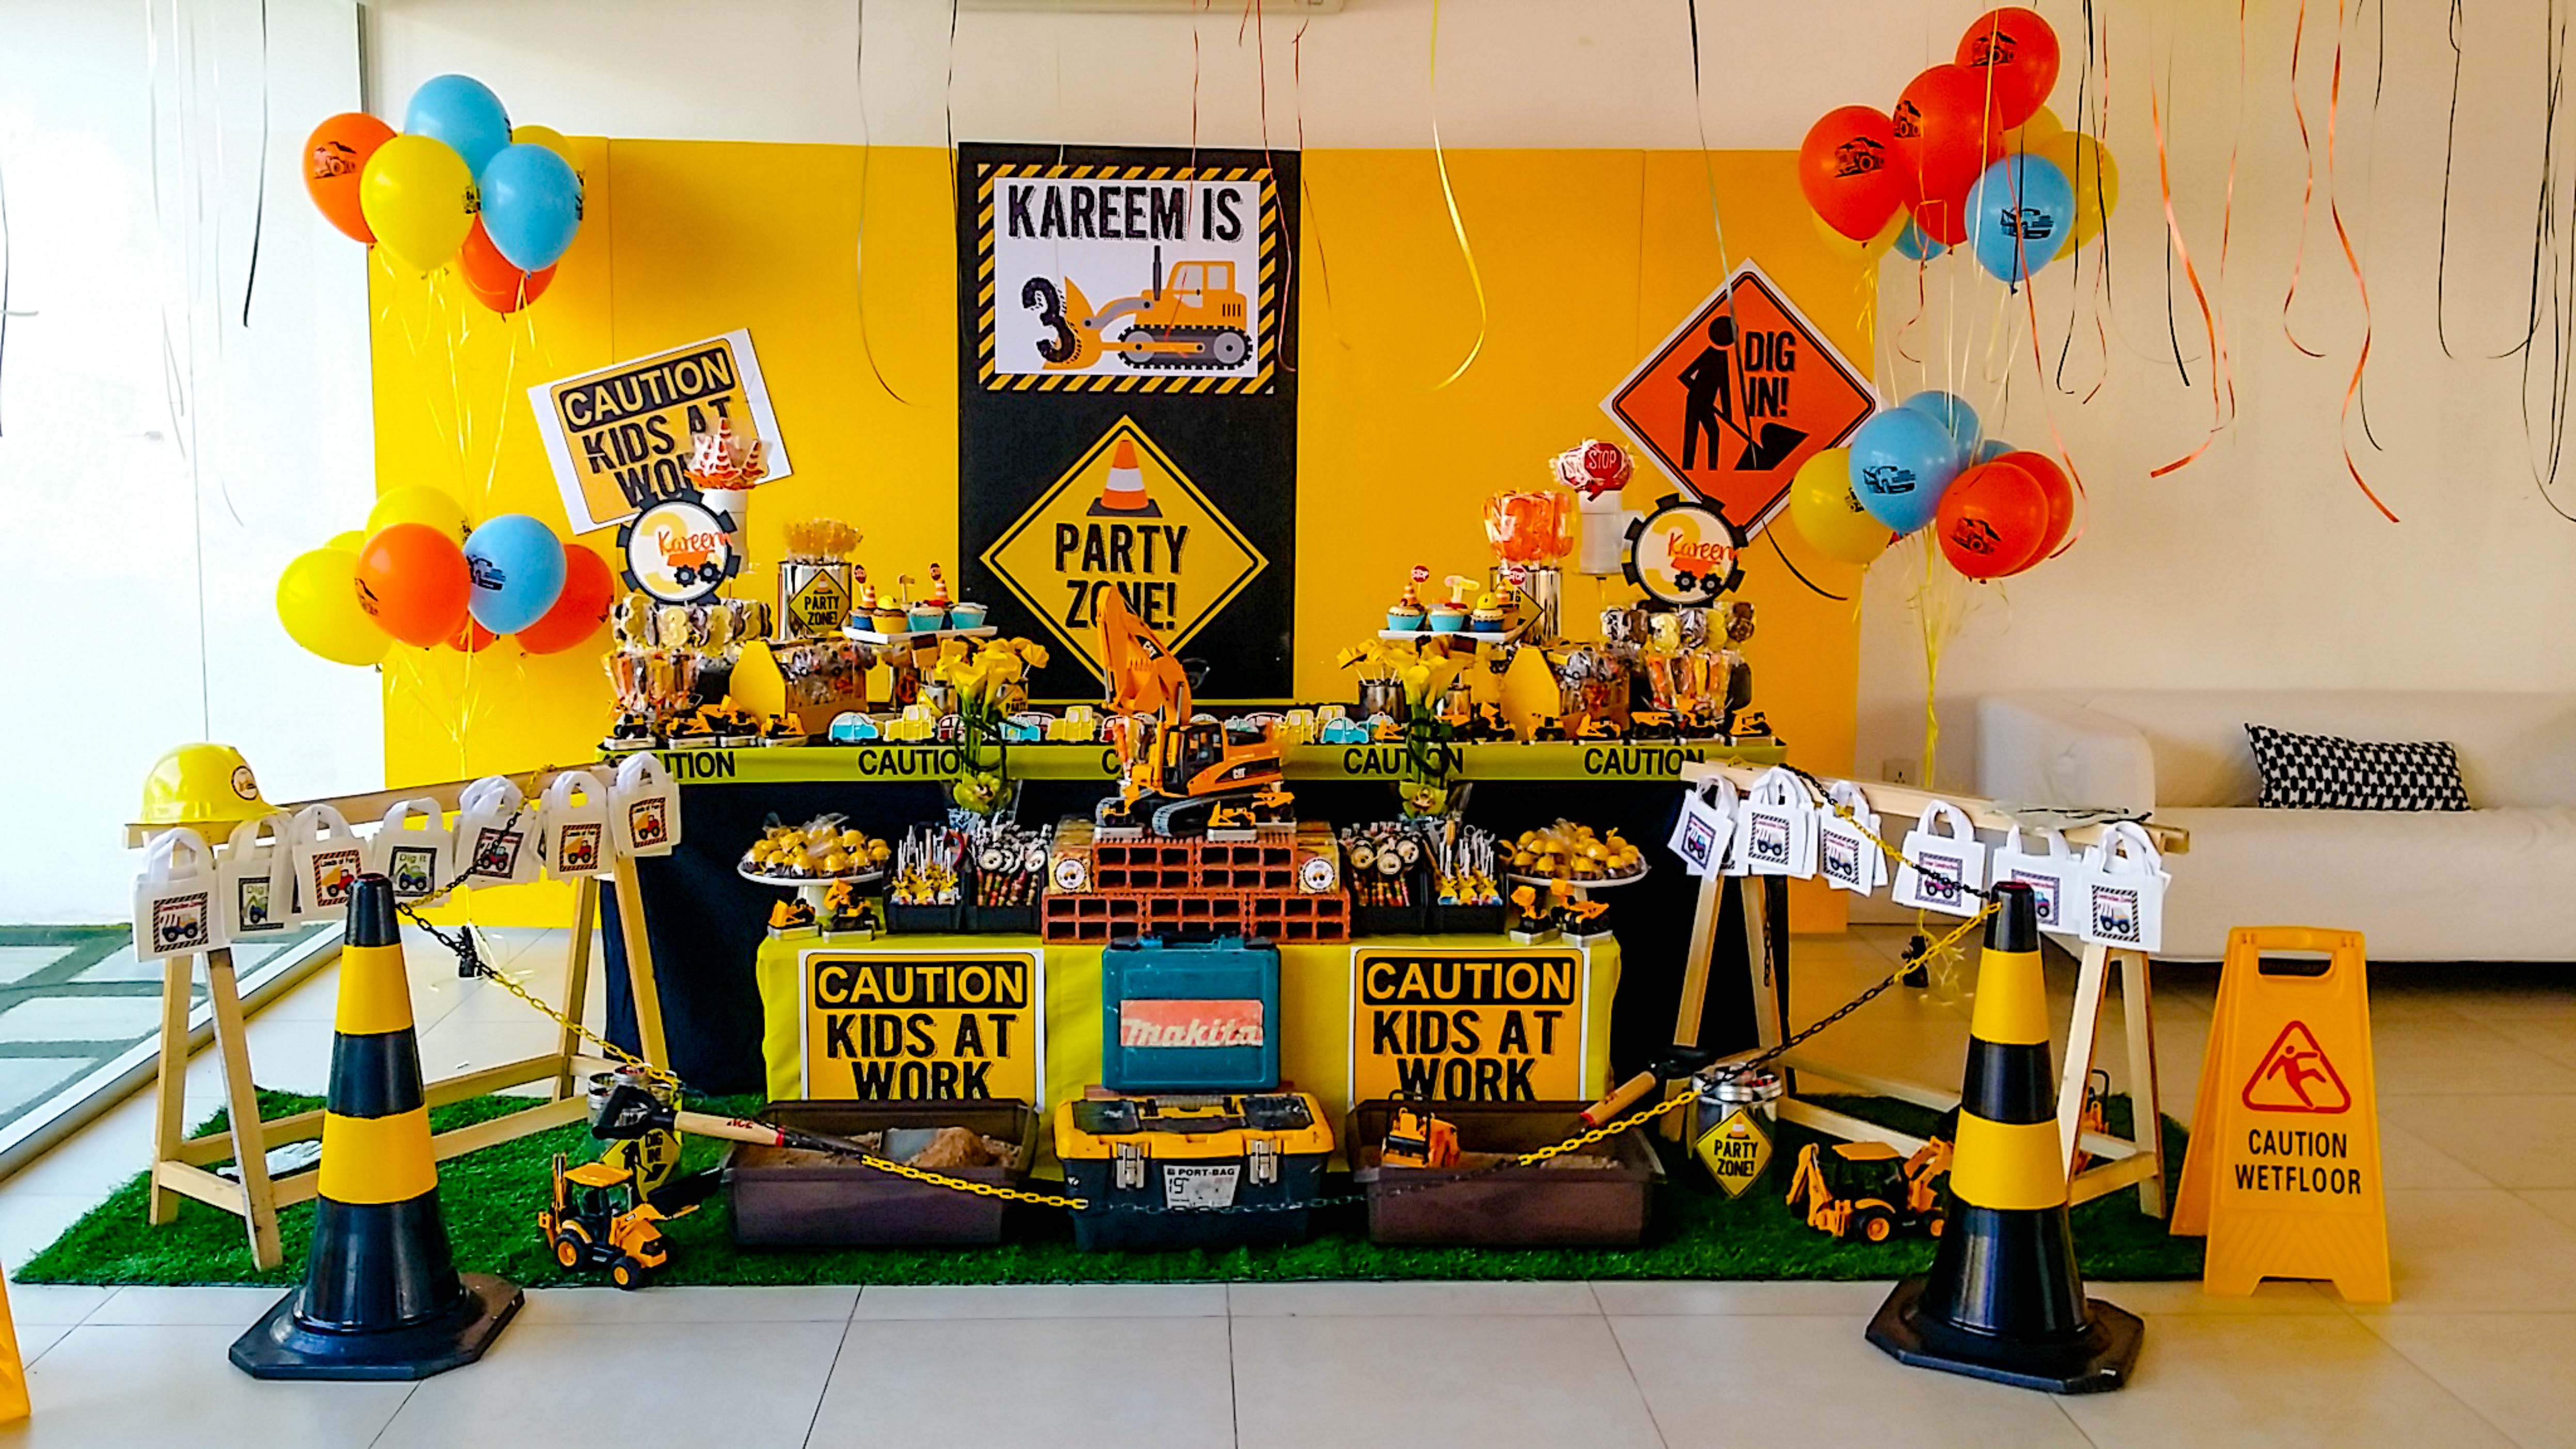 Amazing Construction Party Setup By Fantasyparty Littlebuilders Fantasyp Cars Theme Birthday Party Construction Birthday Theme Construction Birthday Parties